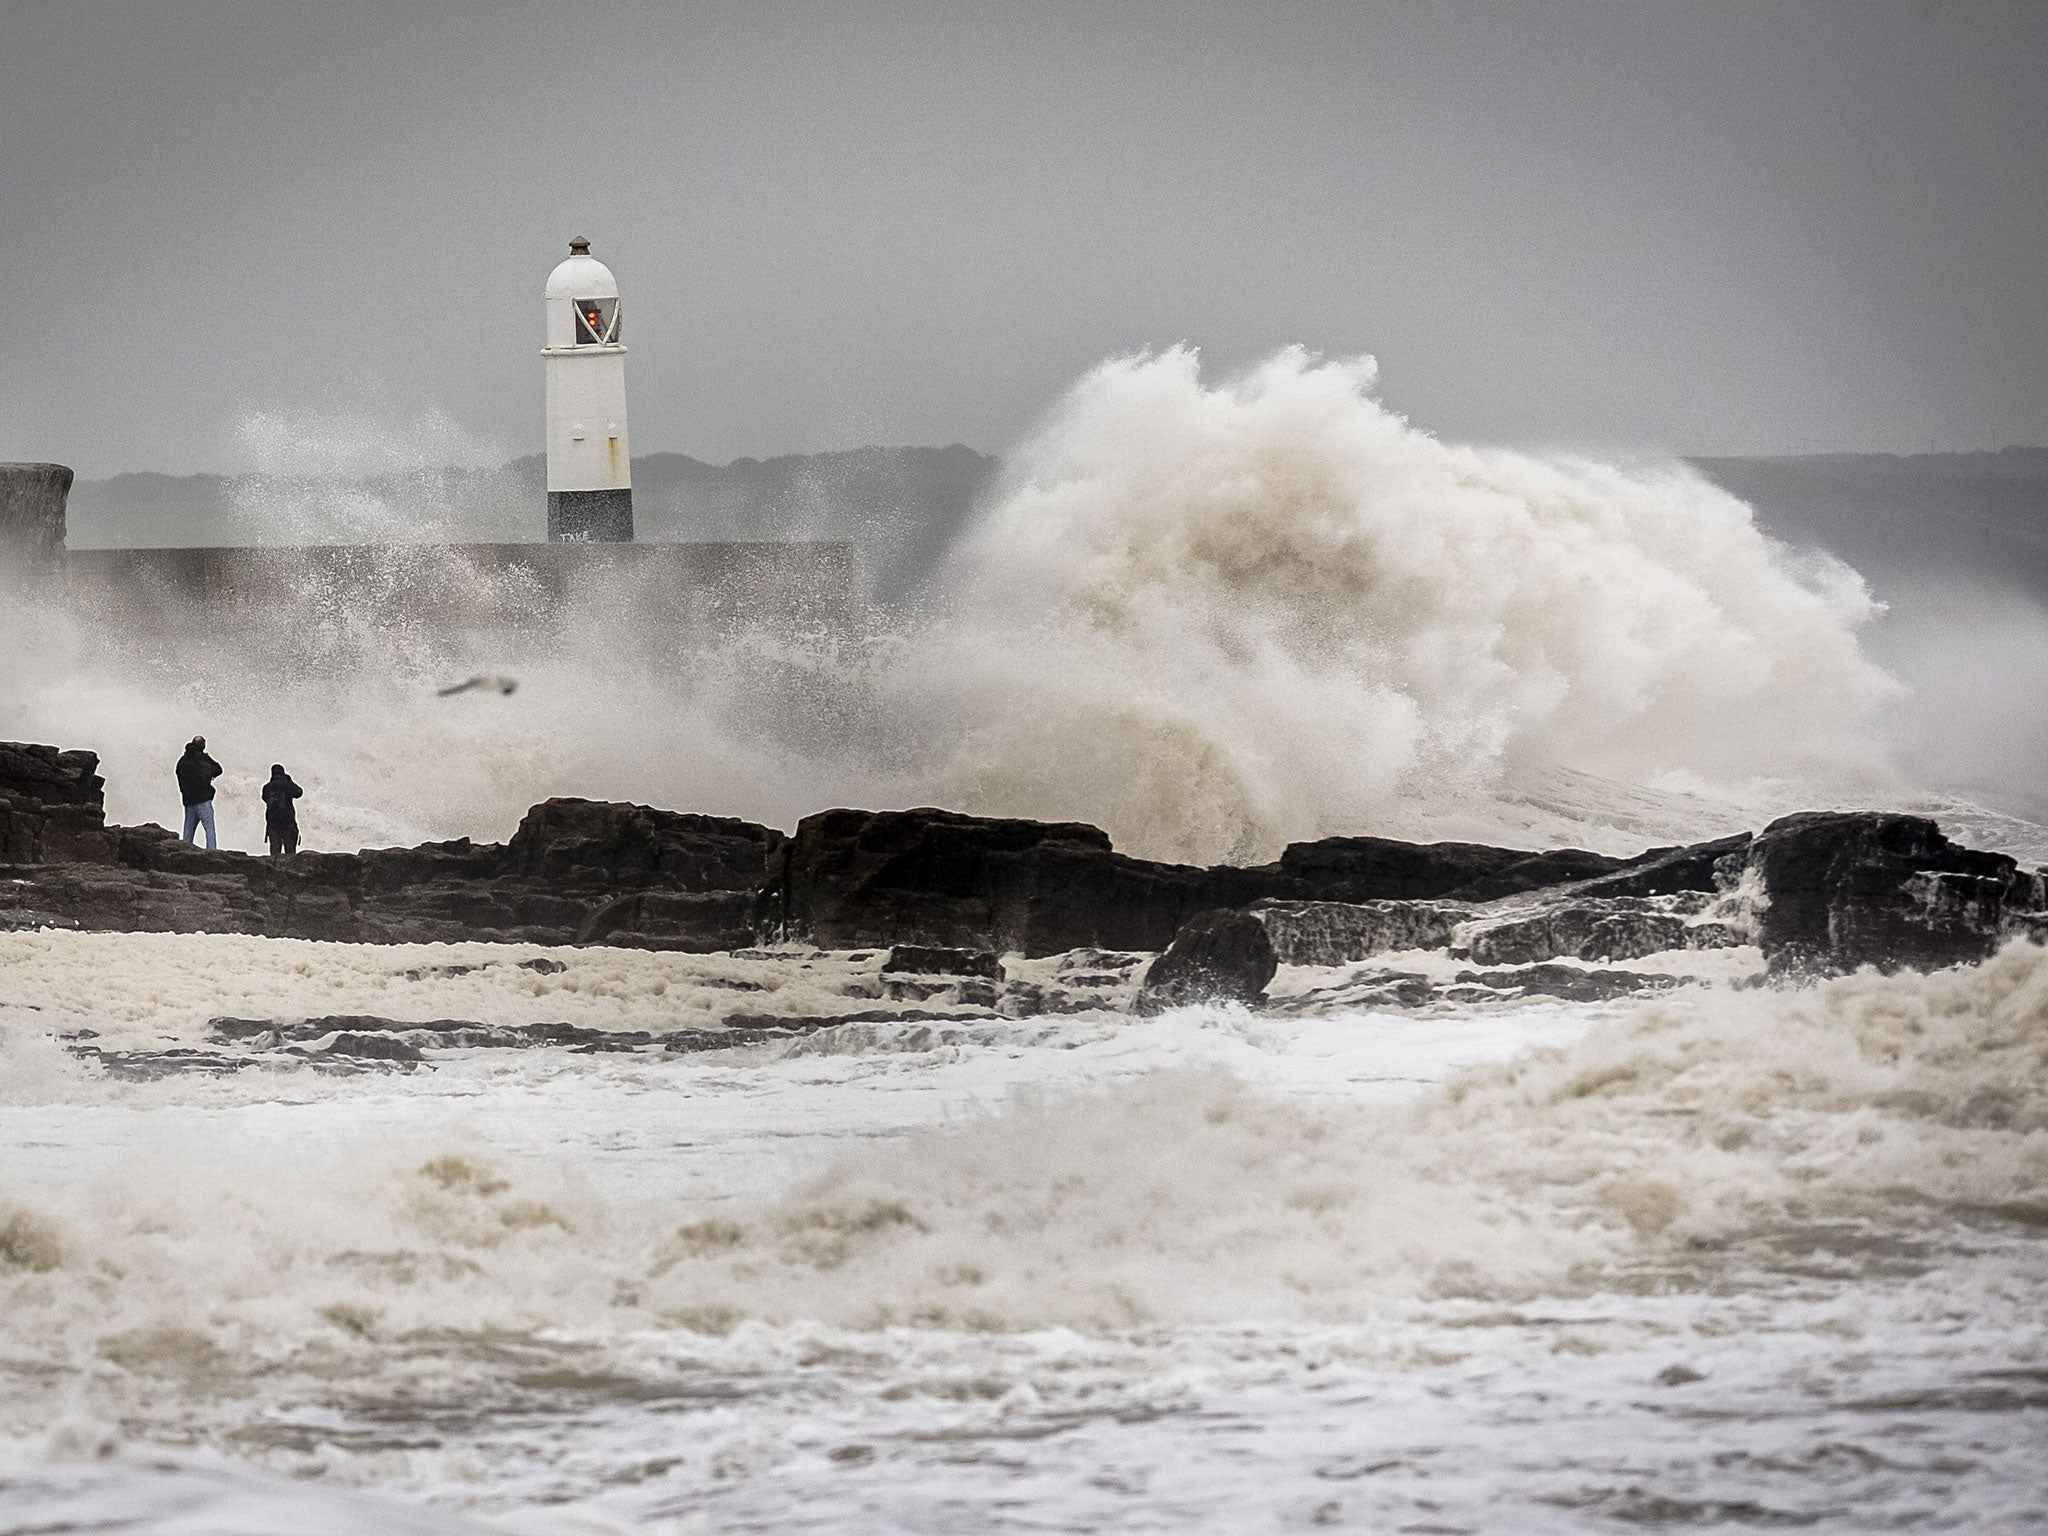 Storm Desmond: Further severe weather warnings issued for week ahead ...